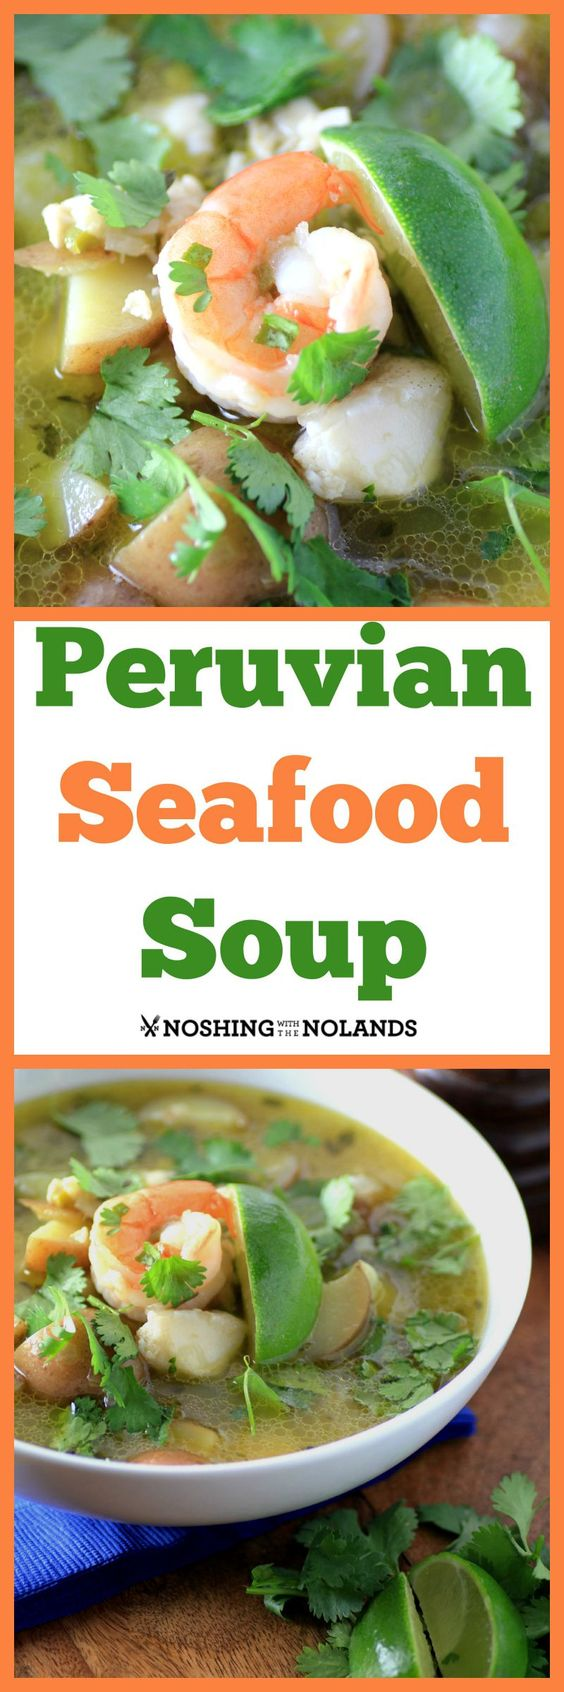 Seafood soup recipes, Seafood soup and Seafood on Pinterest